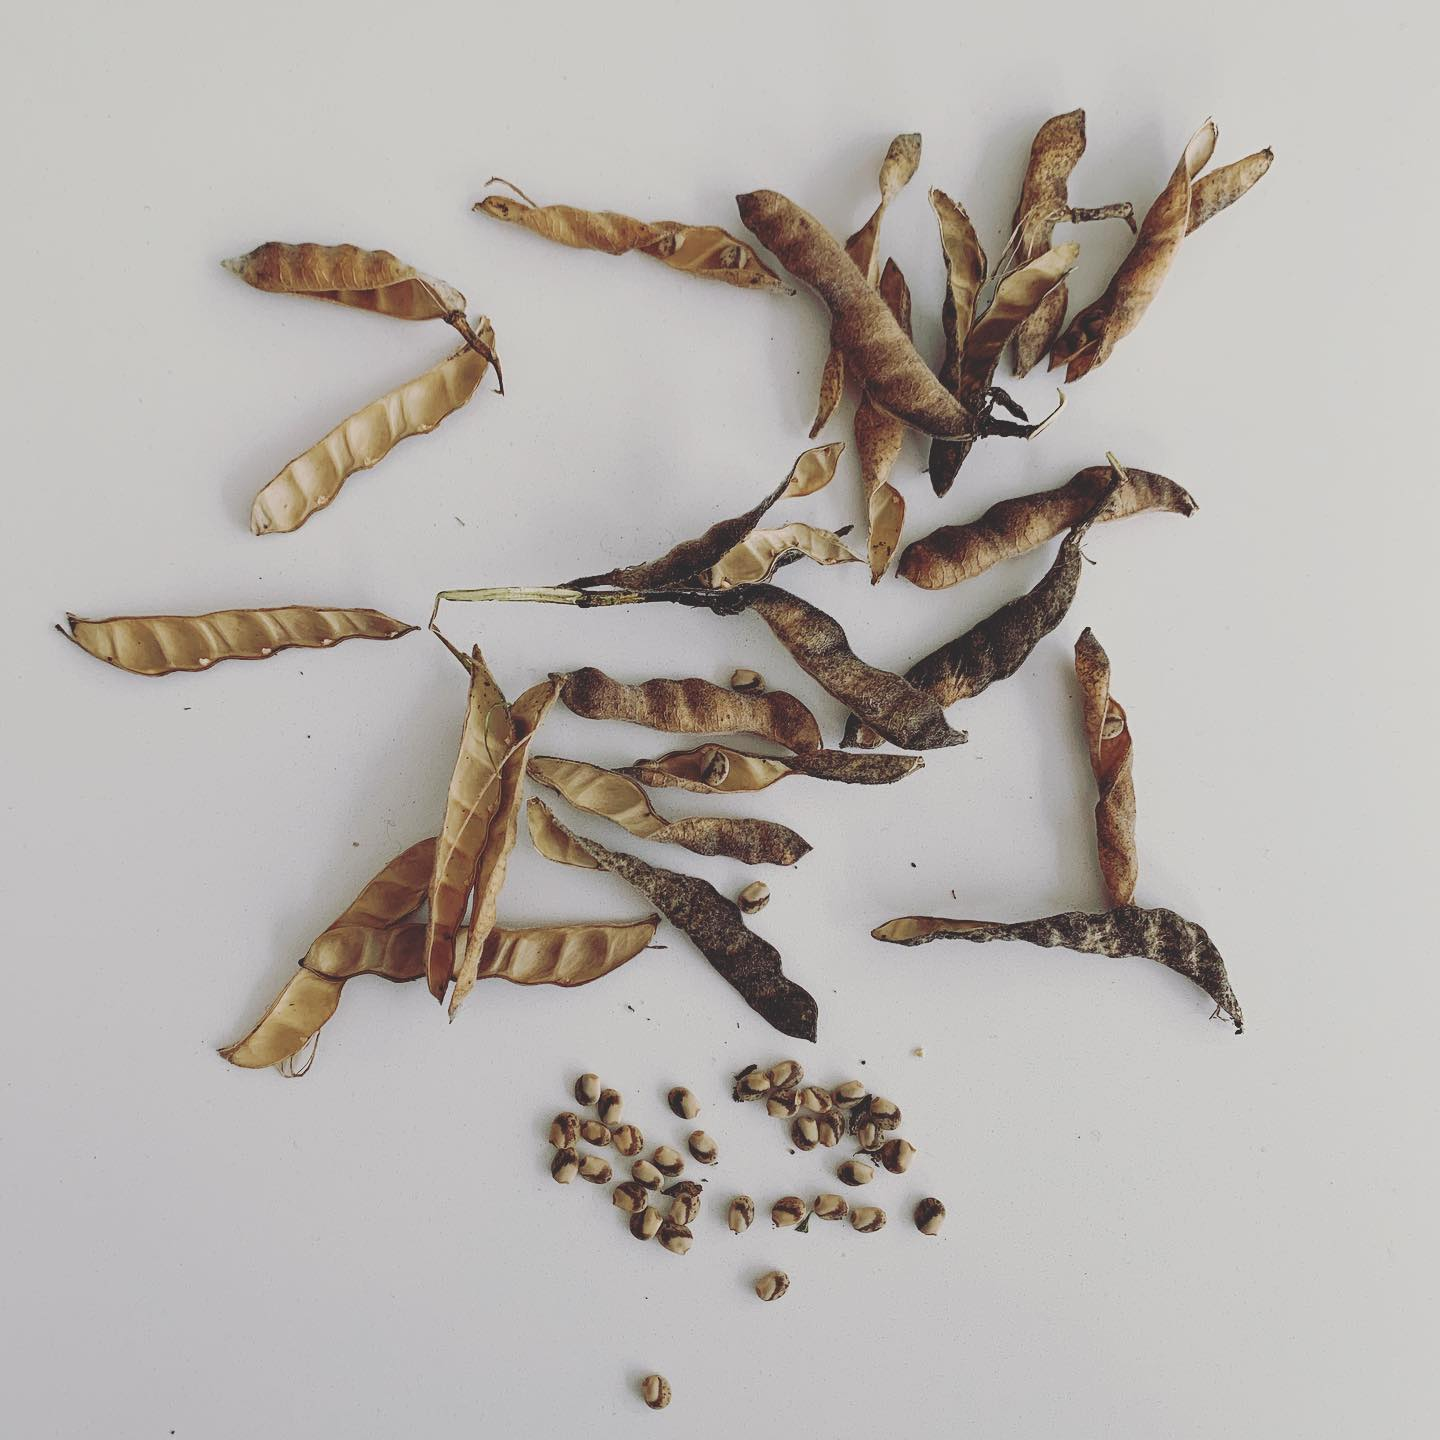 It's that time of year... seed collecting. Time to go around the garden collecting ripe annual and perennial seeds. Make sure nice and dry (difficult today 🌧), remove outer casings of pods or other dead material from the flower...store in a sealed envelope somewhere cool and dry to sow in early spring... or I'm sowing a whole lot now and keeping in a cool greenhouse, maintaining a little moisture through Winter so fingers crossed they germinate as soon as it warms up next year!